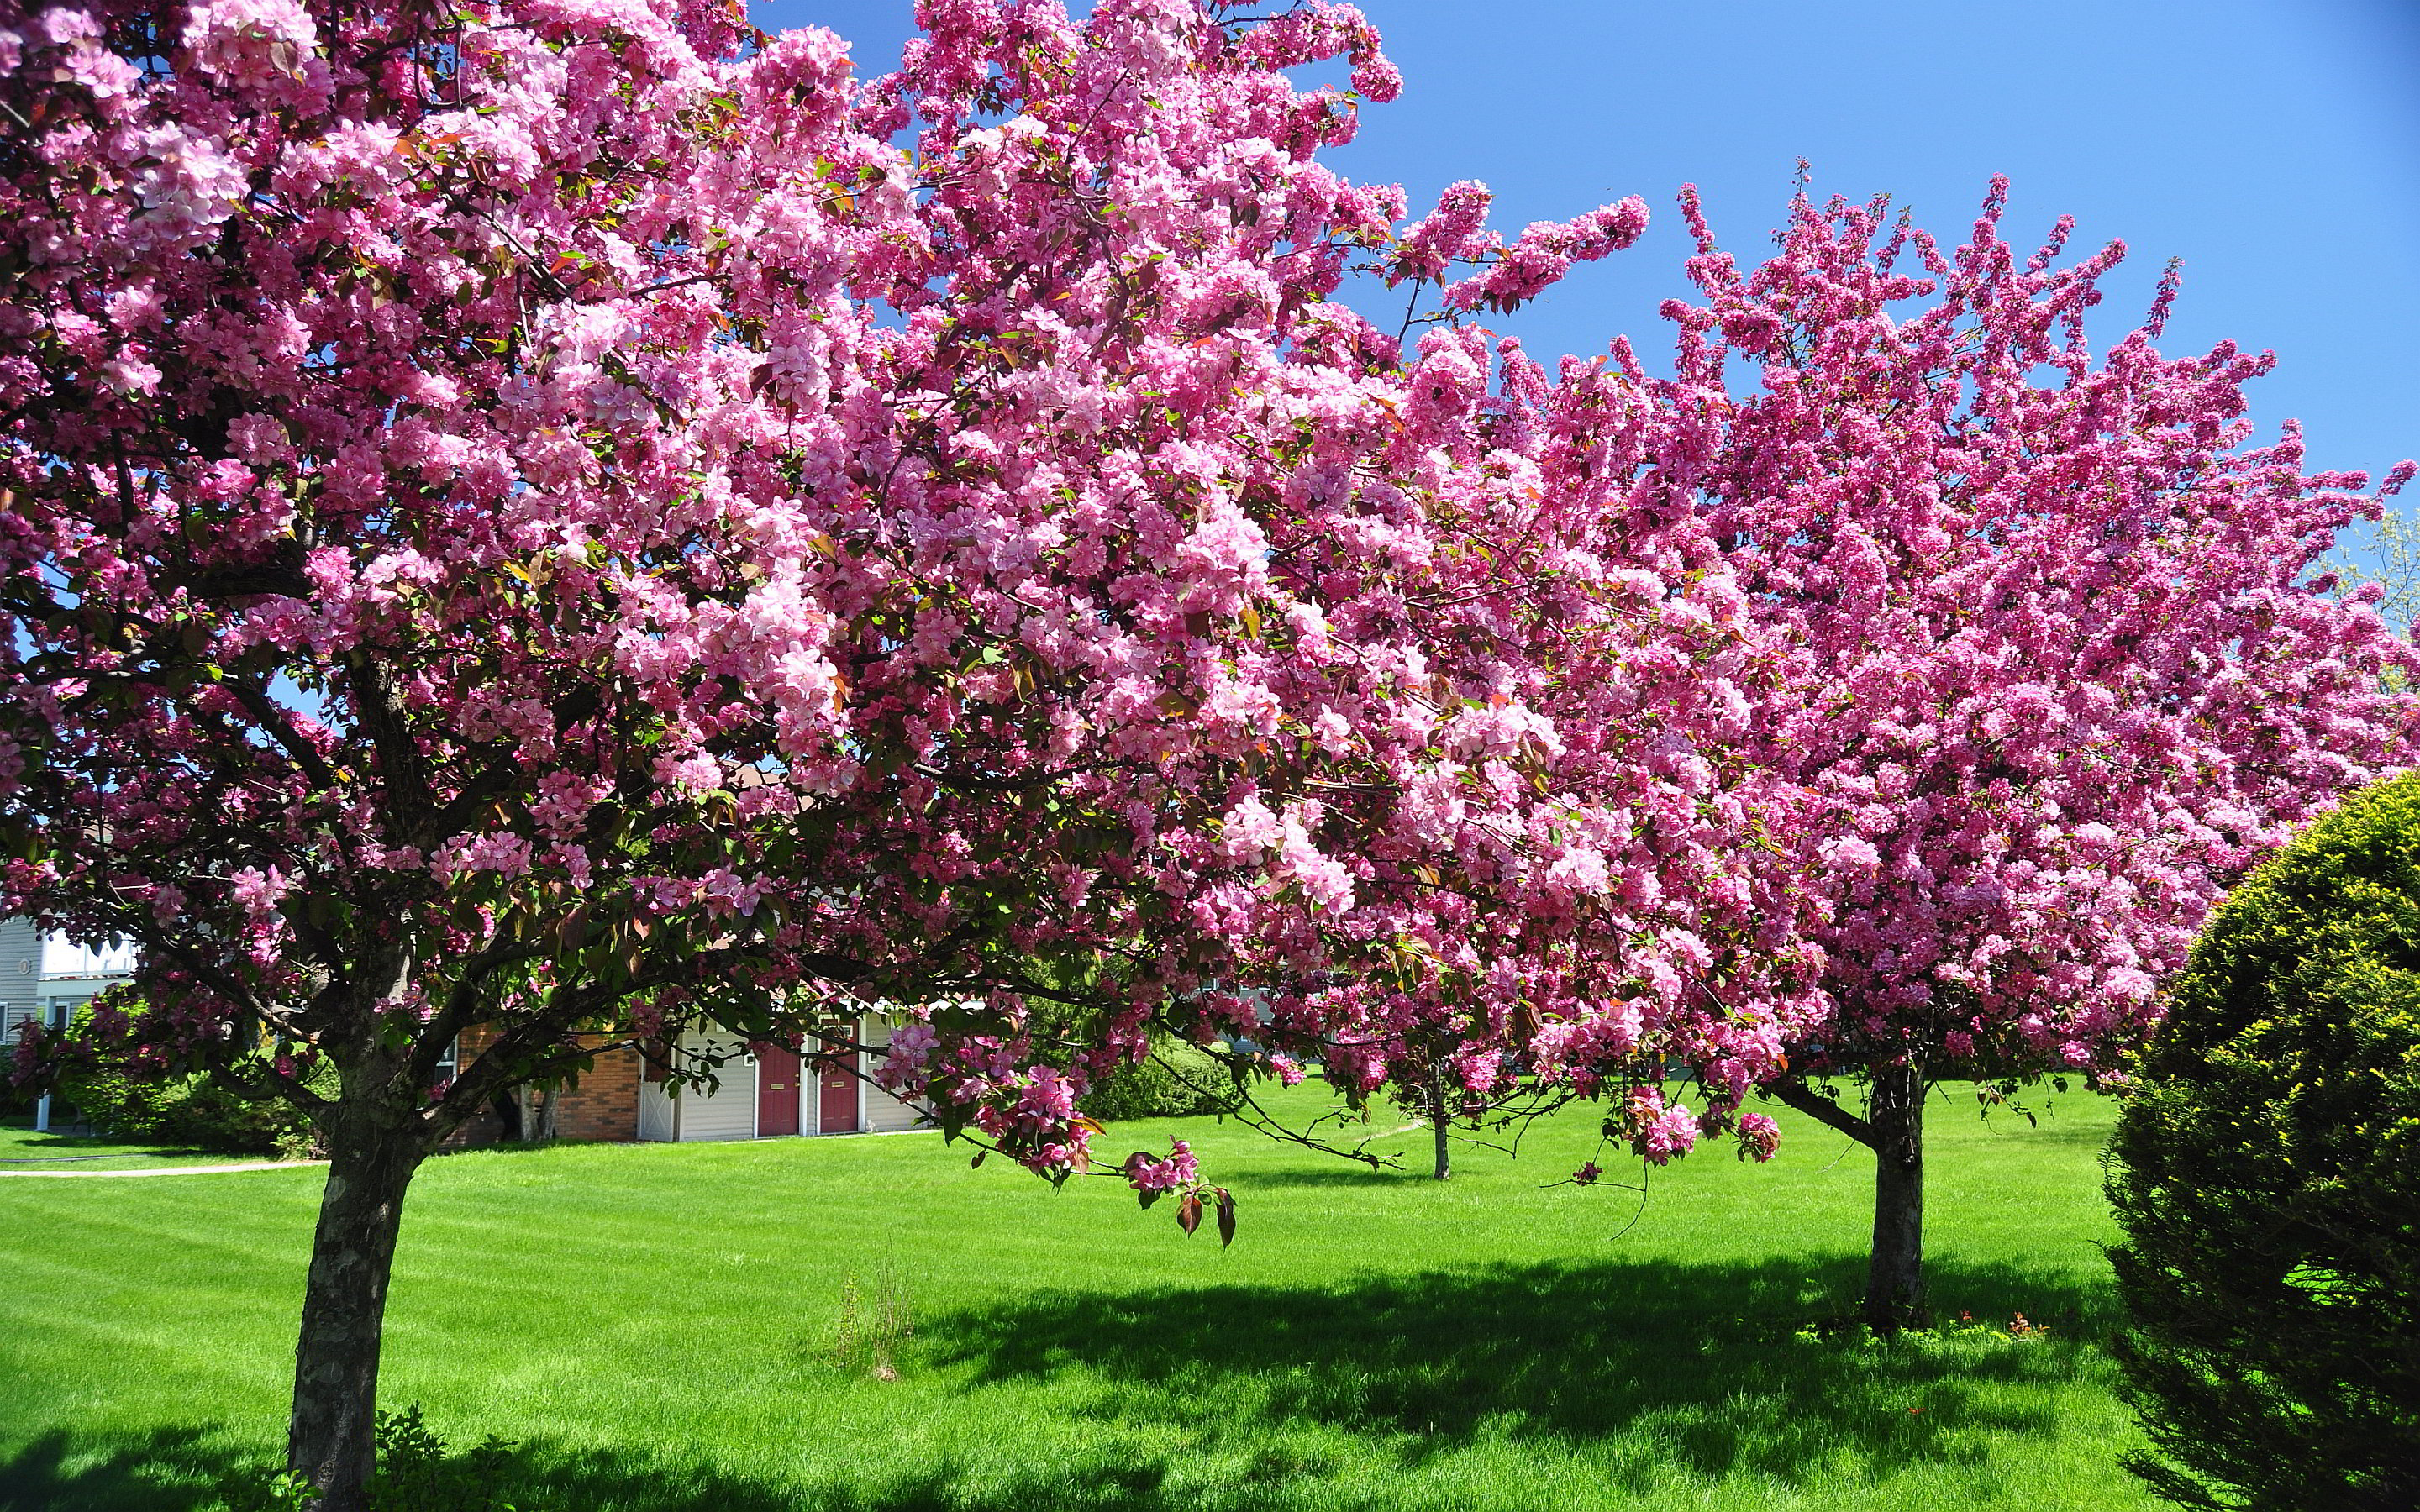 Spring blooming trees